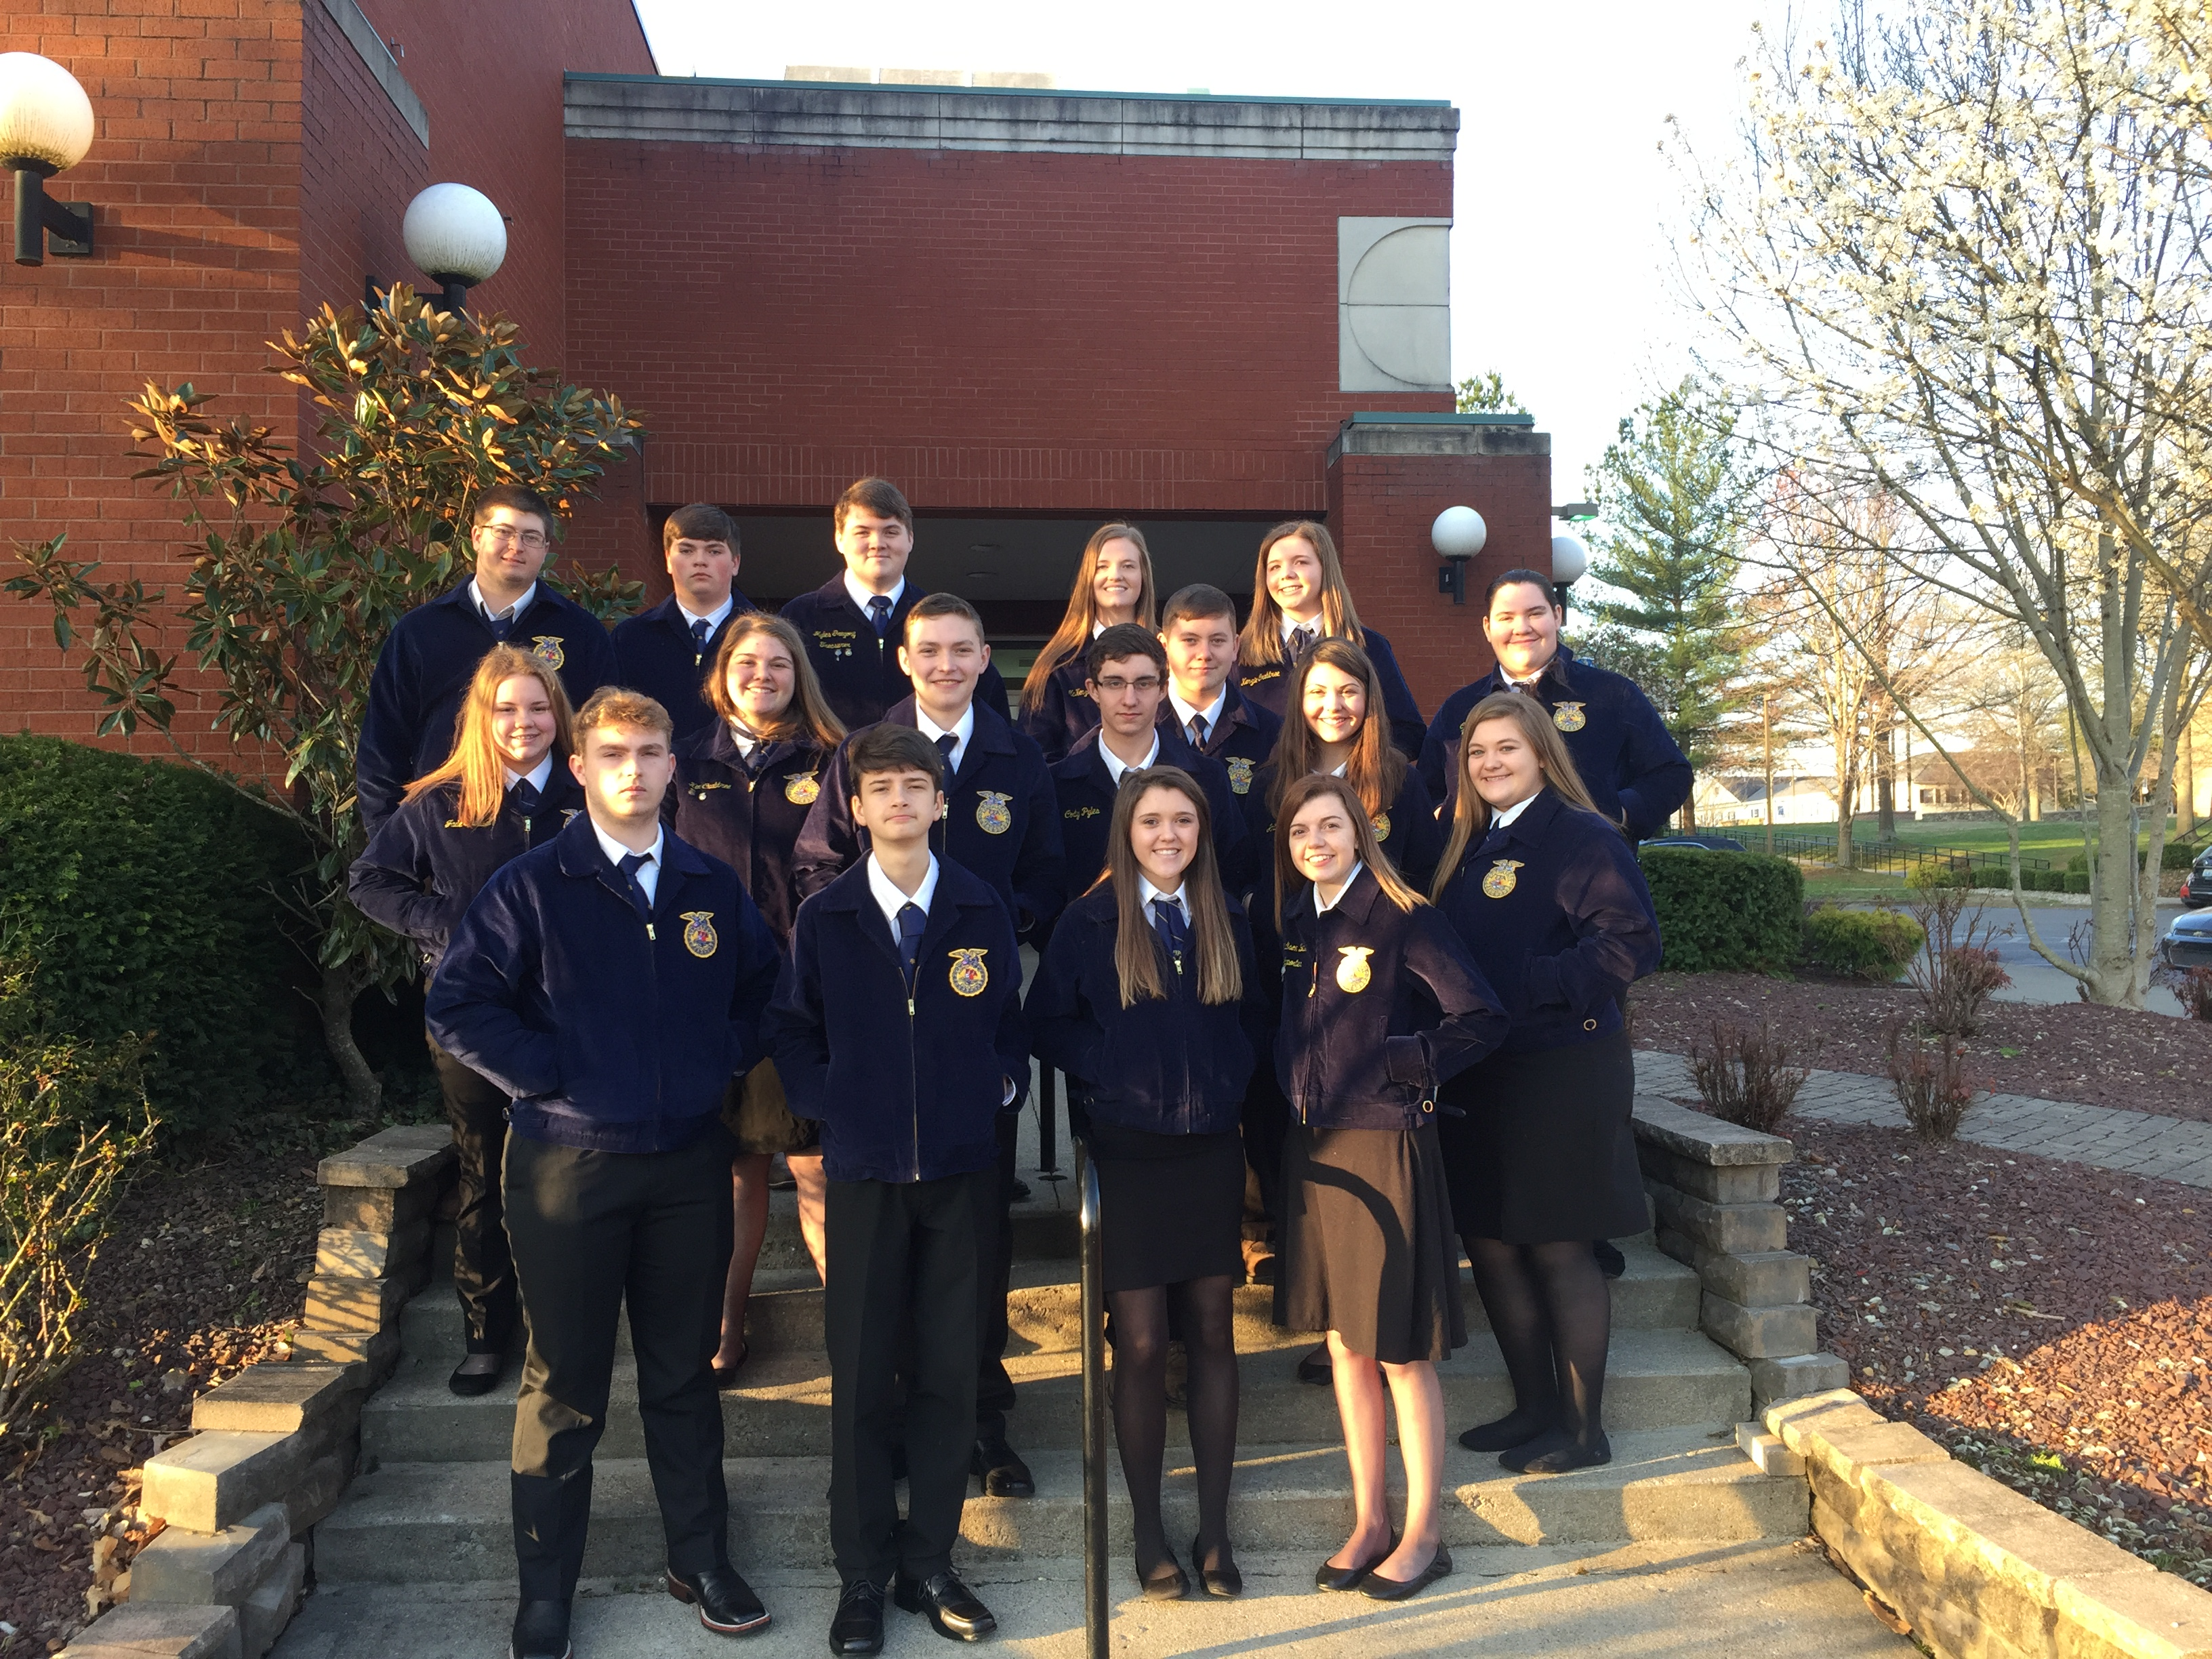 Regional Speaking Day Participants from Wayne County High School